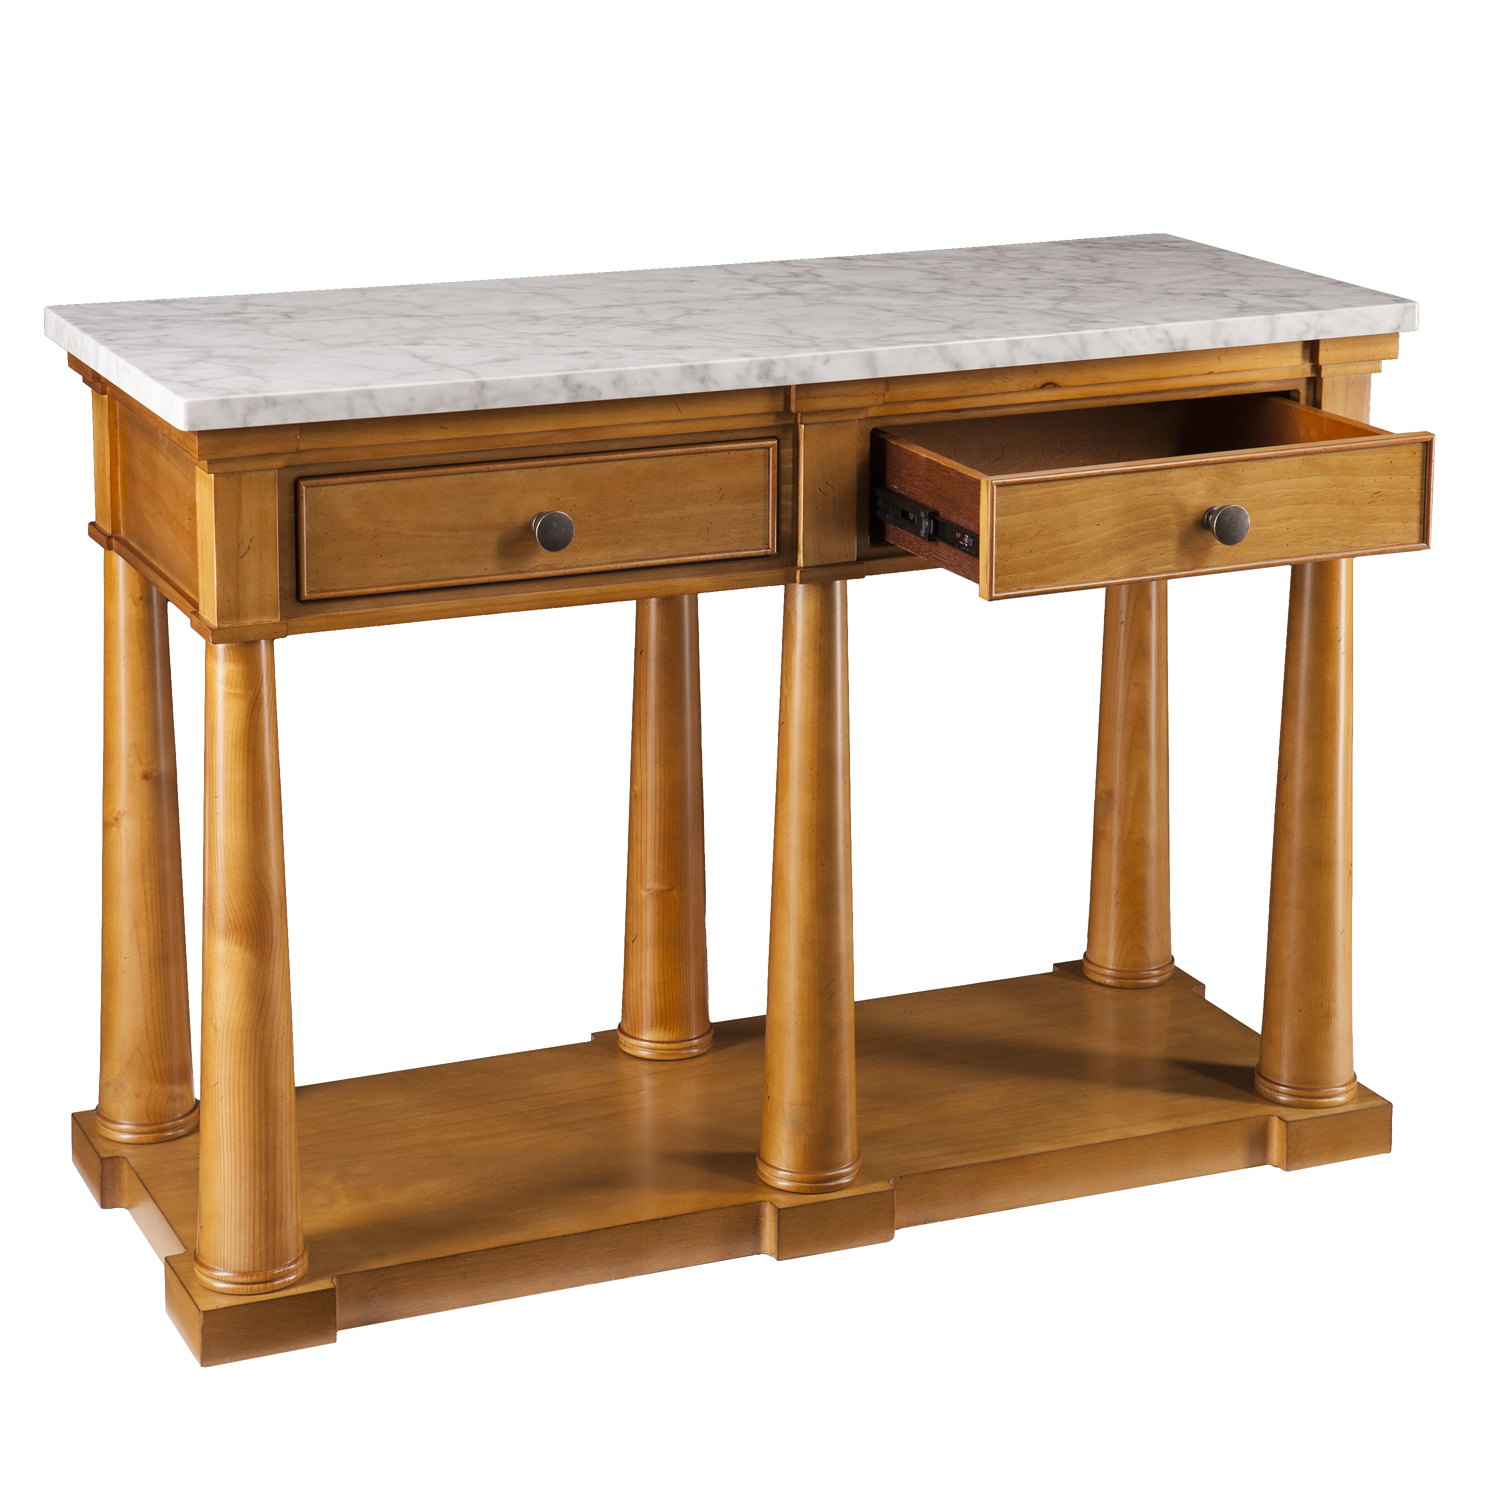 grandview faux marble console table accent tables wood gold convenience concepts coast drummer stool with backrest ikea childrens furniture storage pier imports replacement